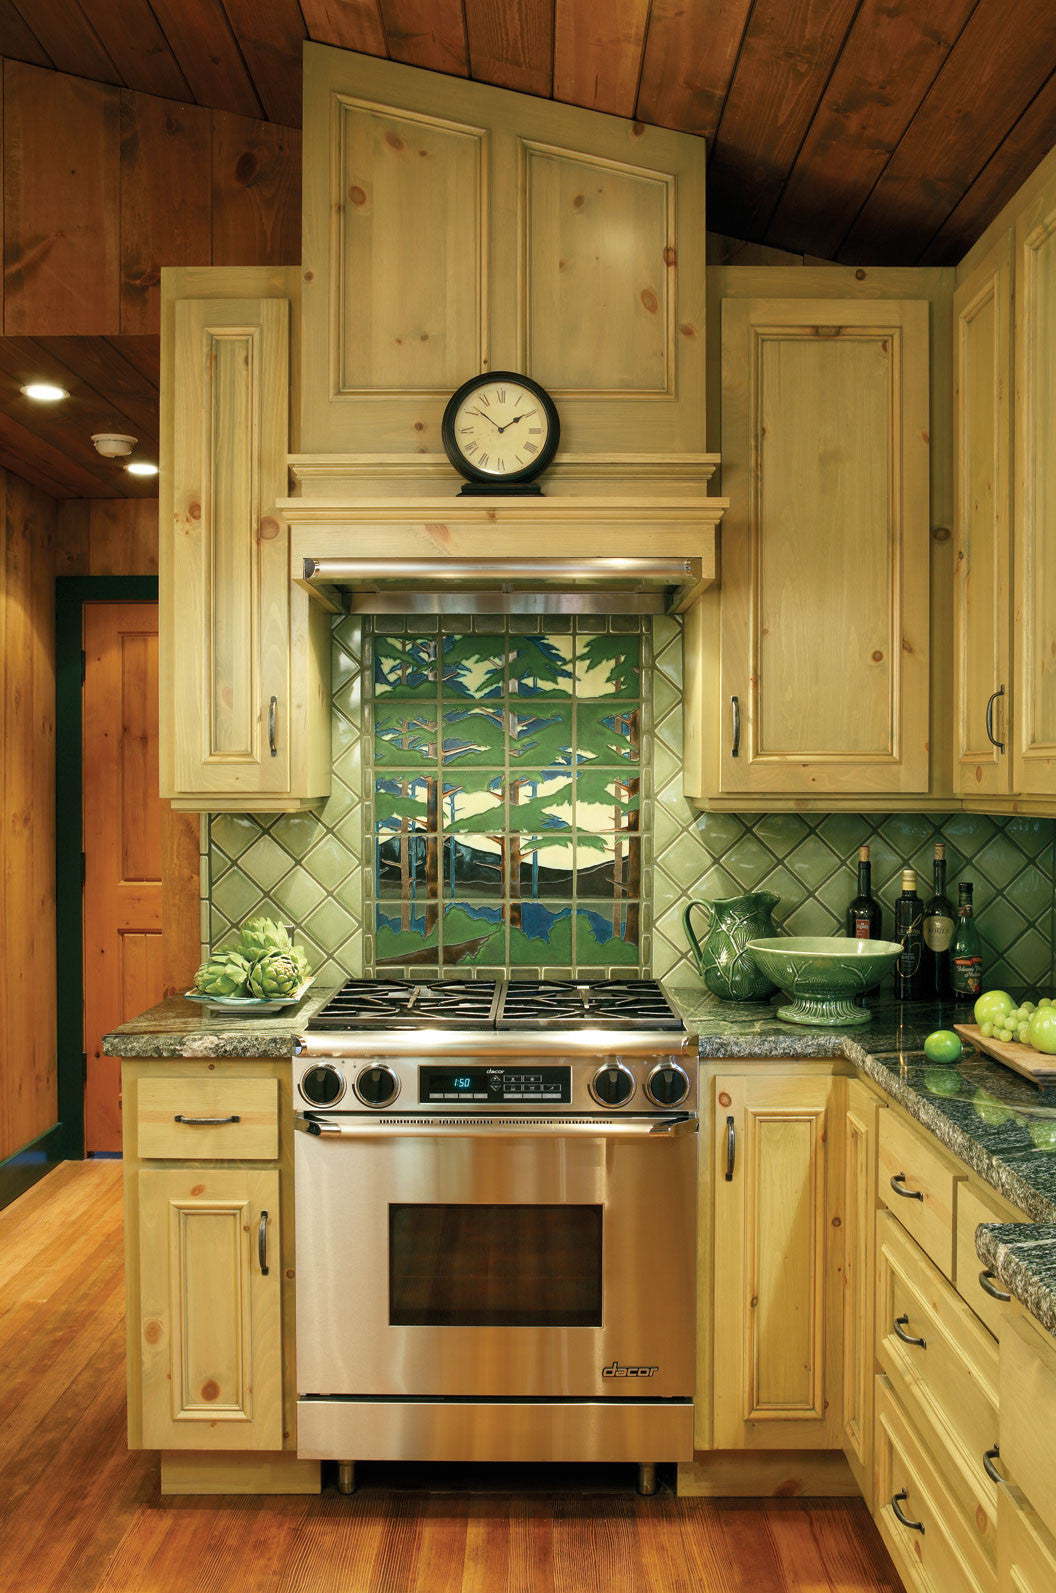 Spotlight on pine landscape motawi tileworks motawis glossy celadon glaze adds a bright tone to this interpretation of our pine landscape mural featured above the stove doublecrazyfo Image collections